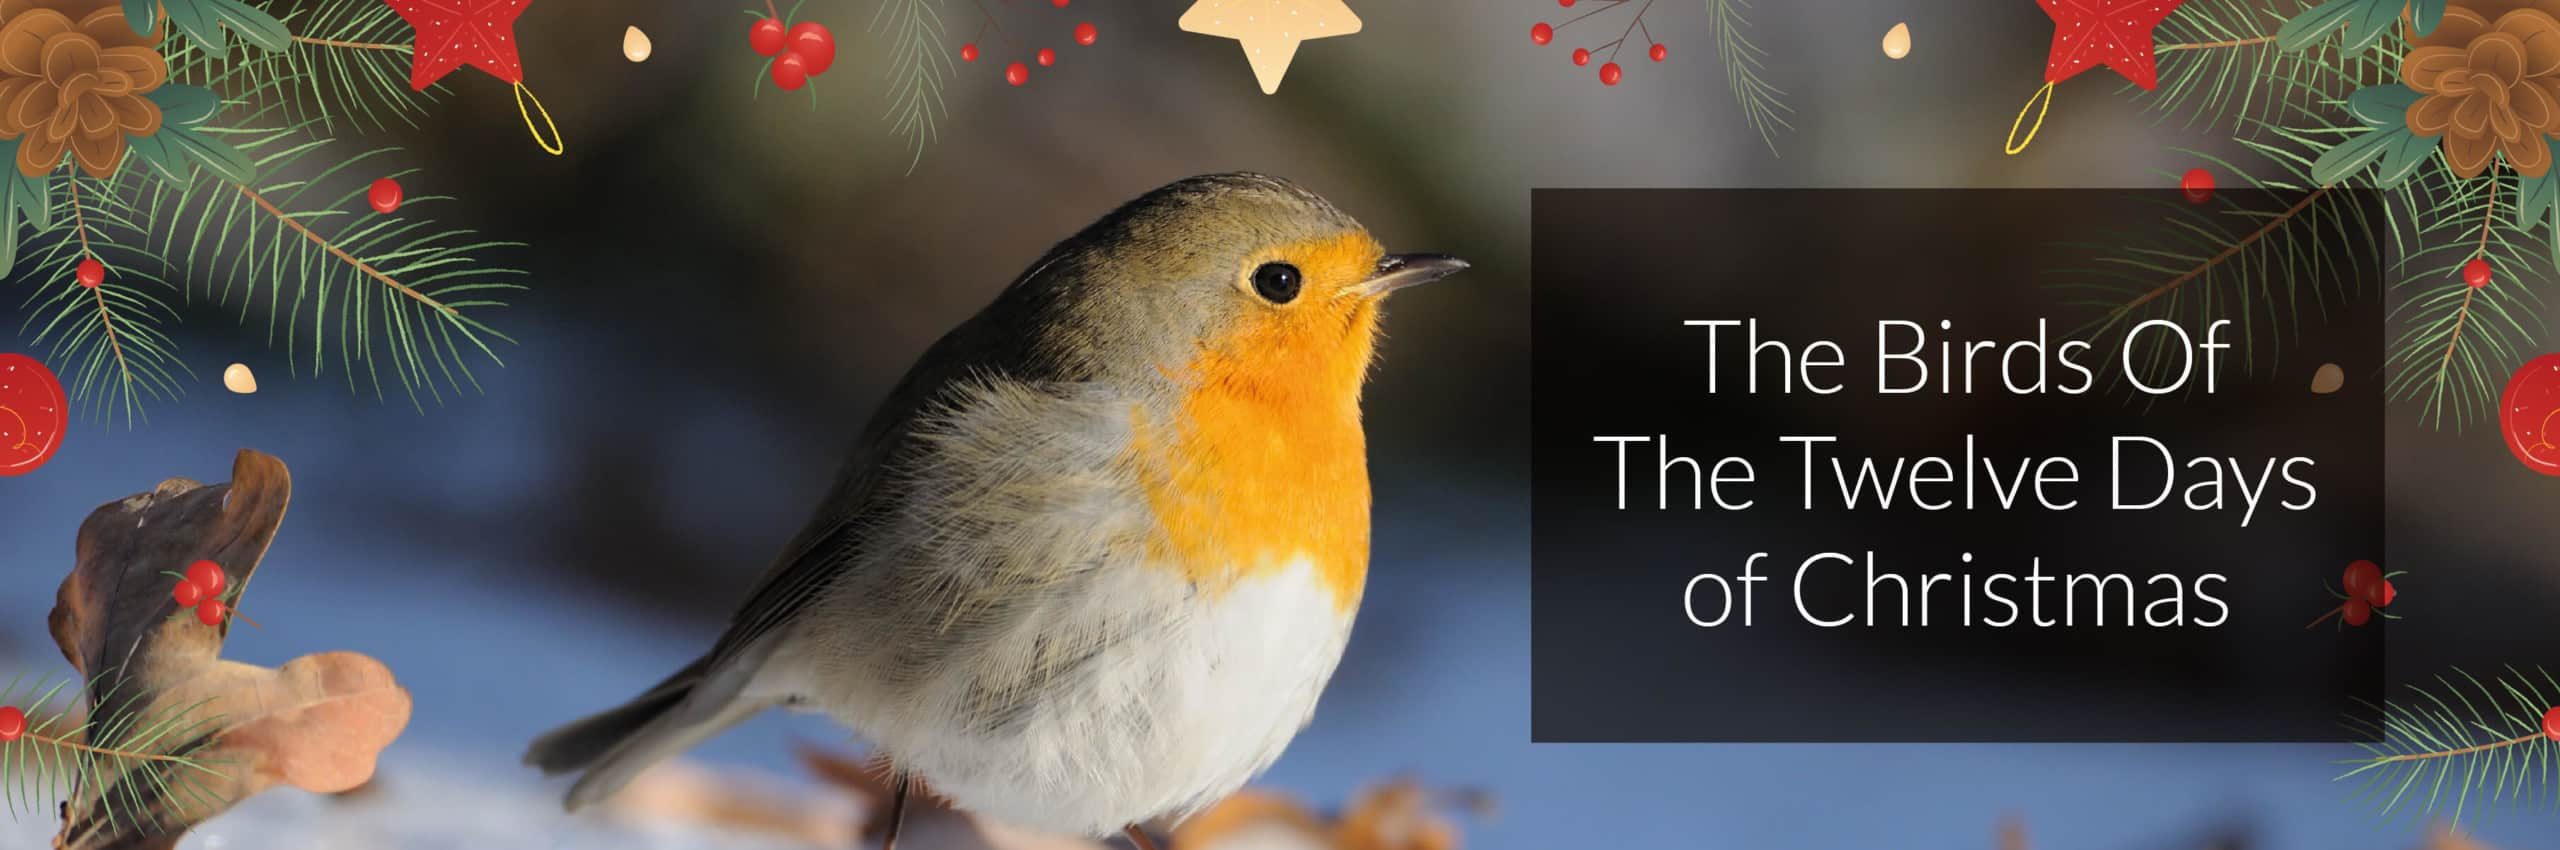 The Birds of The Twelve Days of Christmas